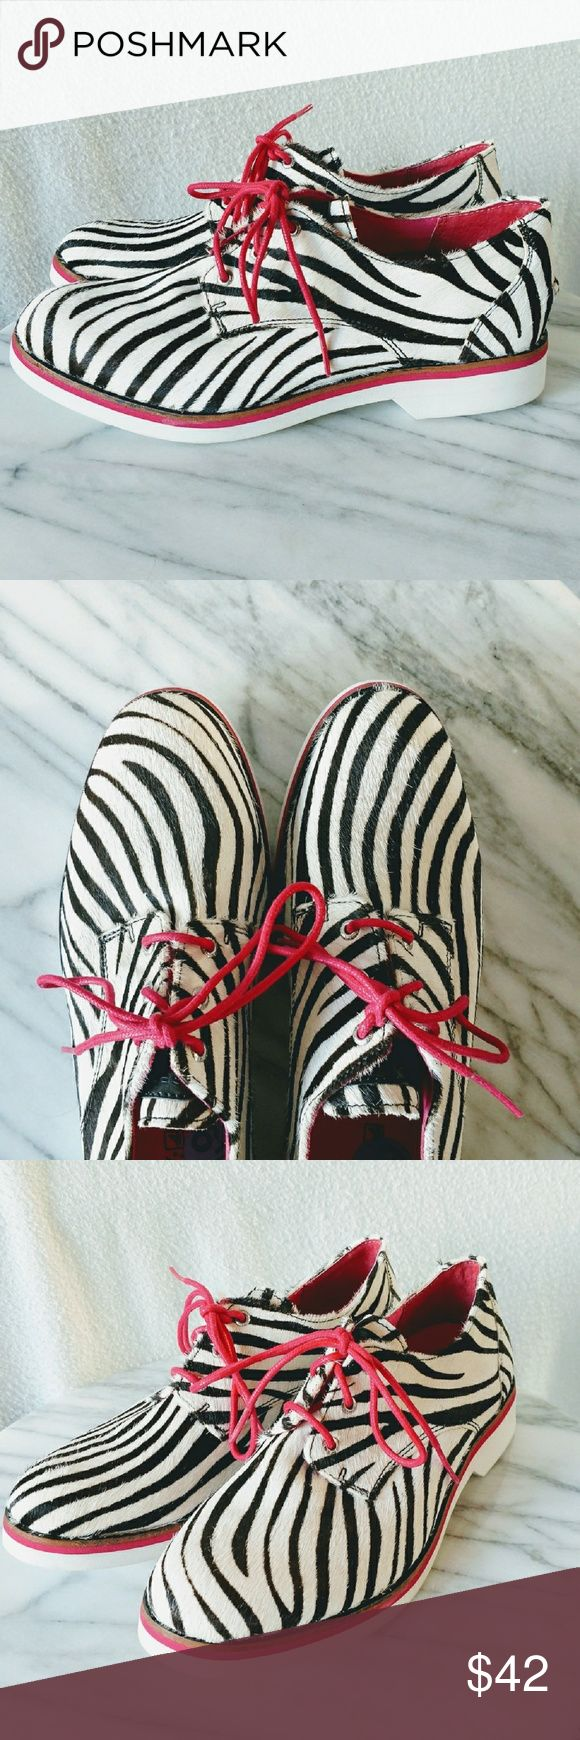 Sperry Zebra Pony Hair Leather & Hot Pink Shoes These unique shoes have a pony hair leather exterior with zebra stripes and hot pink shoe laces to top them off!  Tags: sperry, top-sider, top Sider, zebra stripes, black and white, hot pink, shoe laces, horse hair, pony hair, leather, new, cute, rocker chic, hipster, flats, lace ups, designer Sperry Top-Sider Shoes